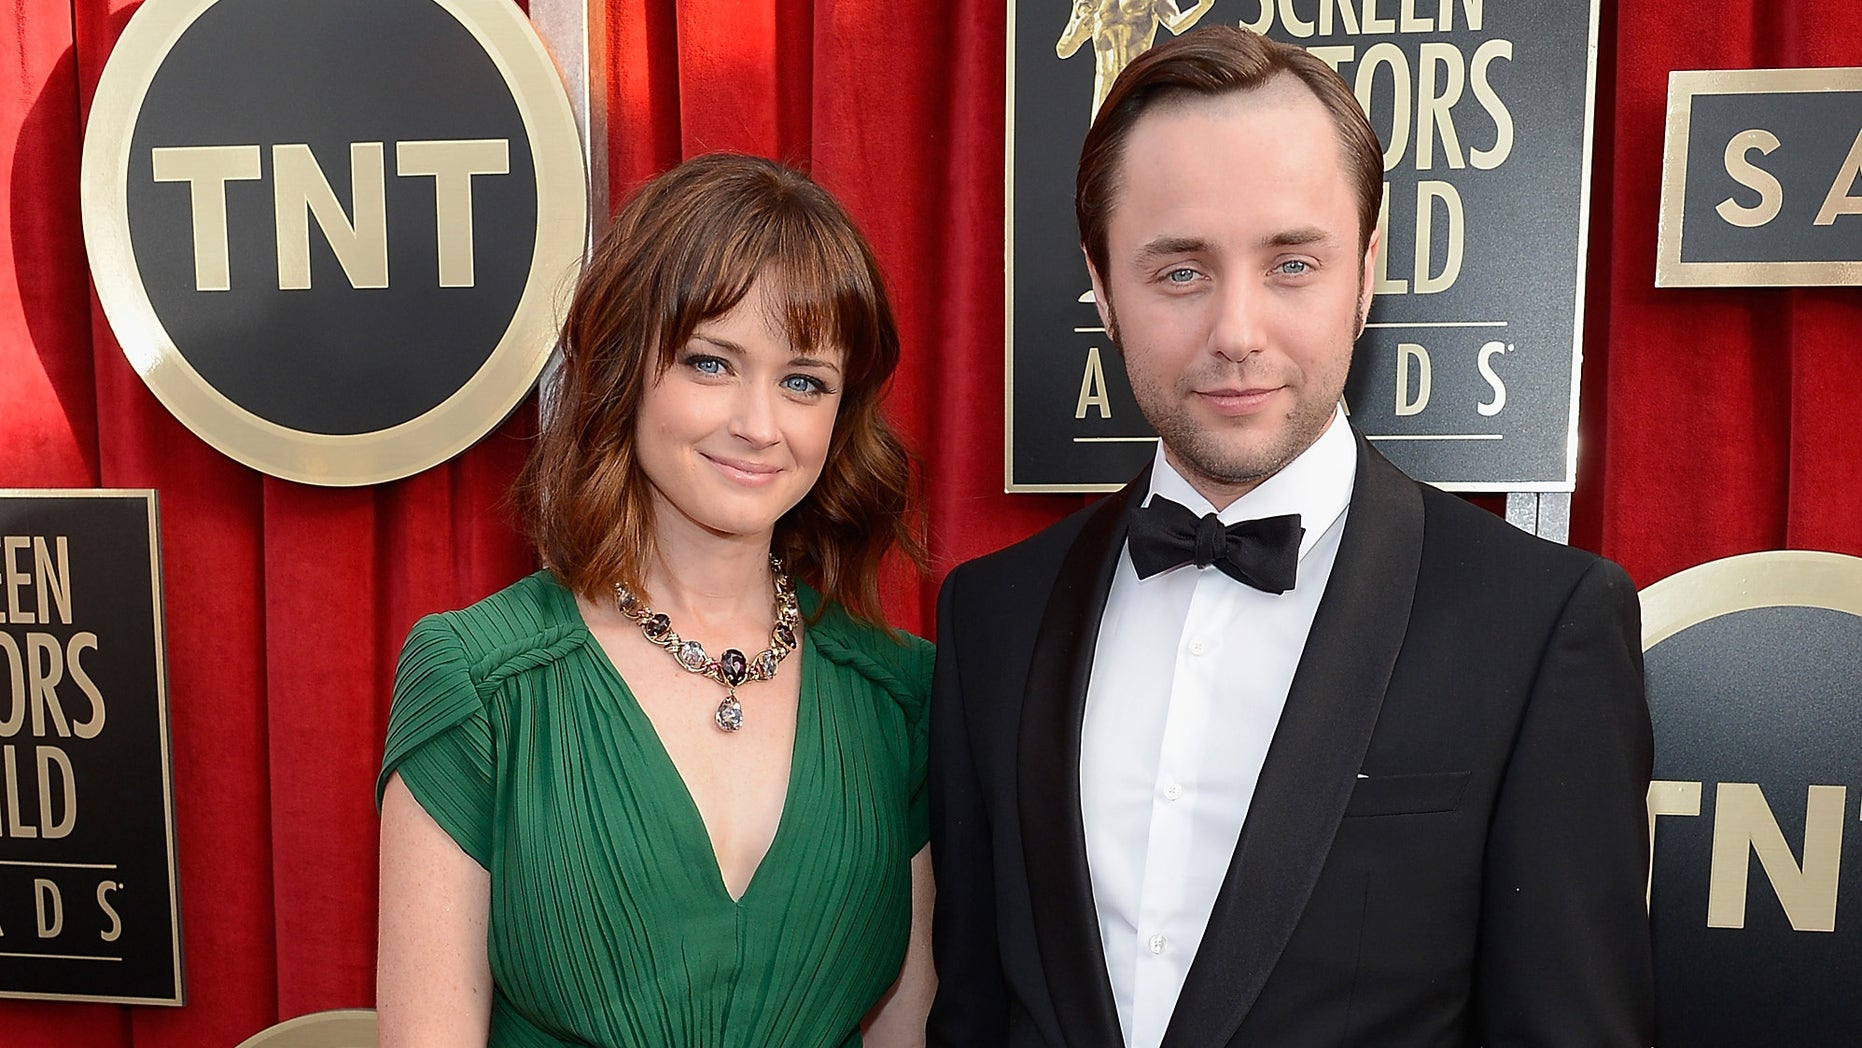 Alexis Bledel and Vincent Kartheiser on January 27, 2013 in Los Angeles, California.